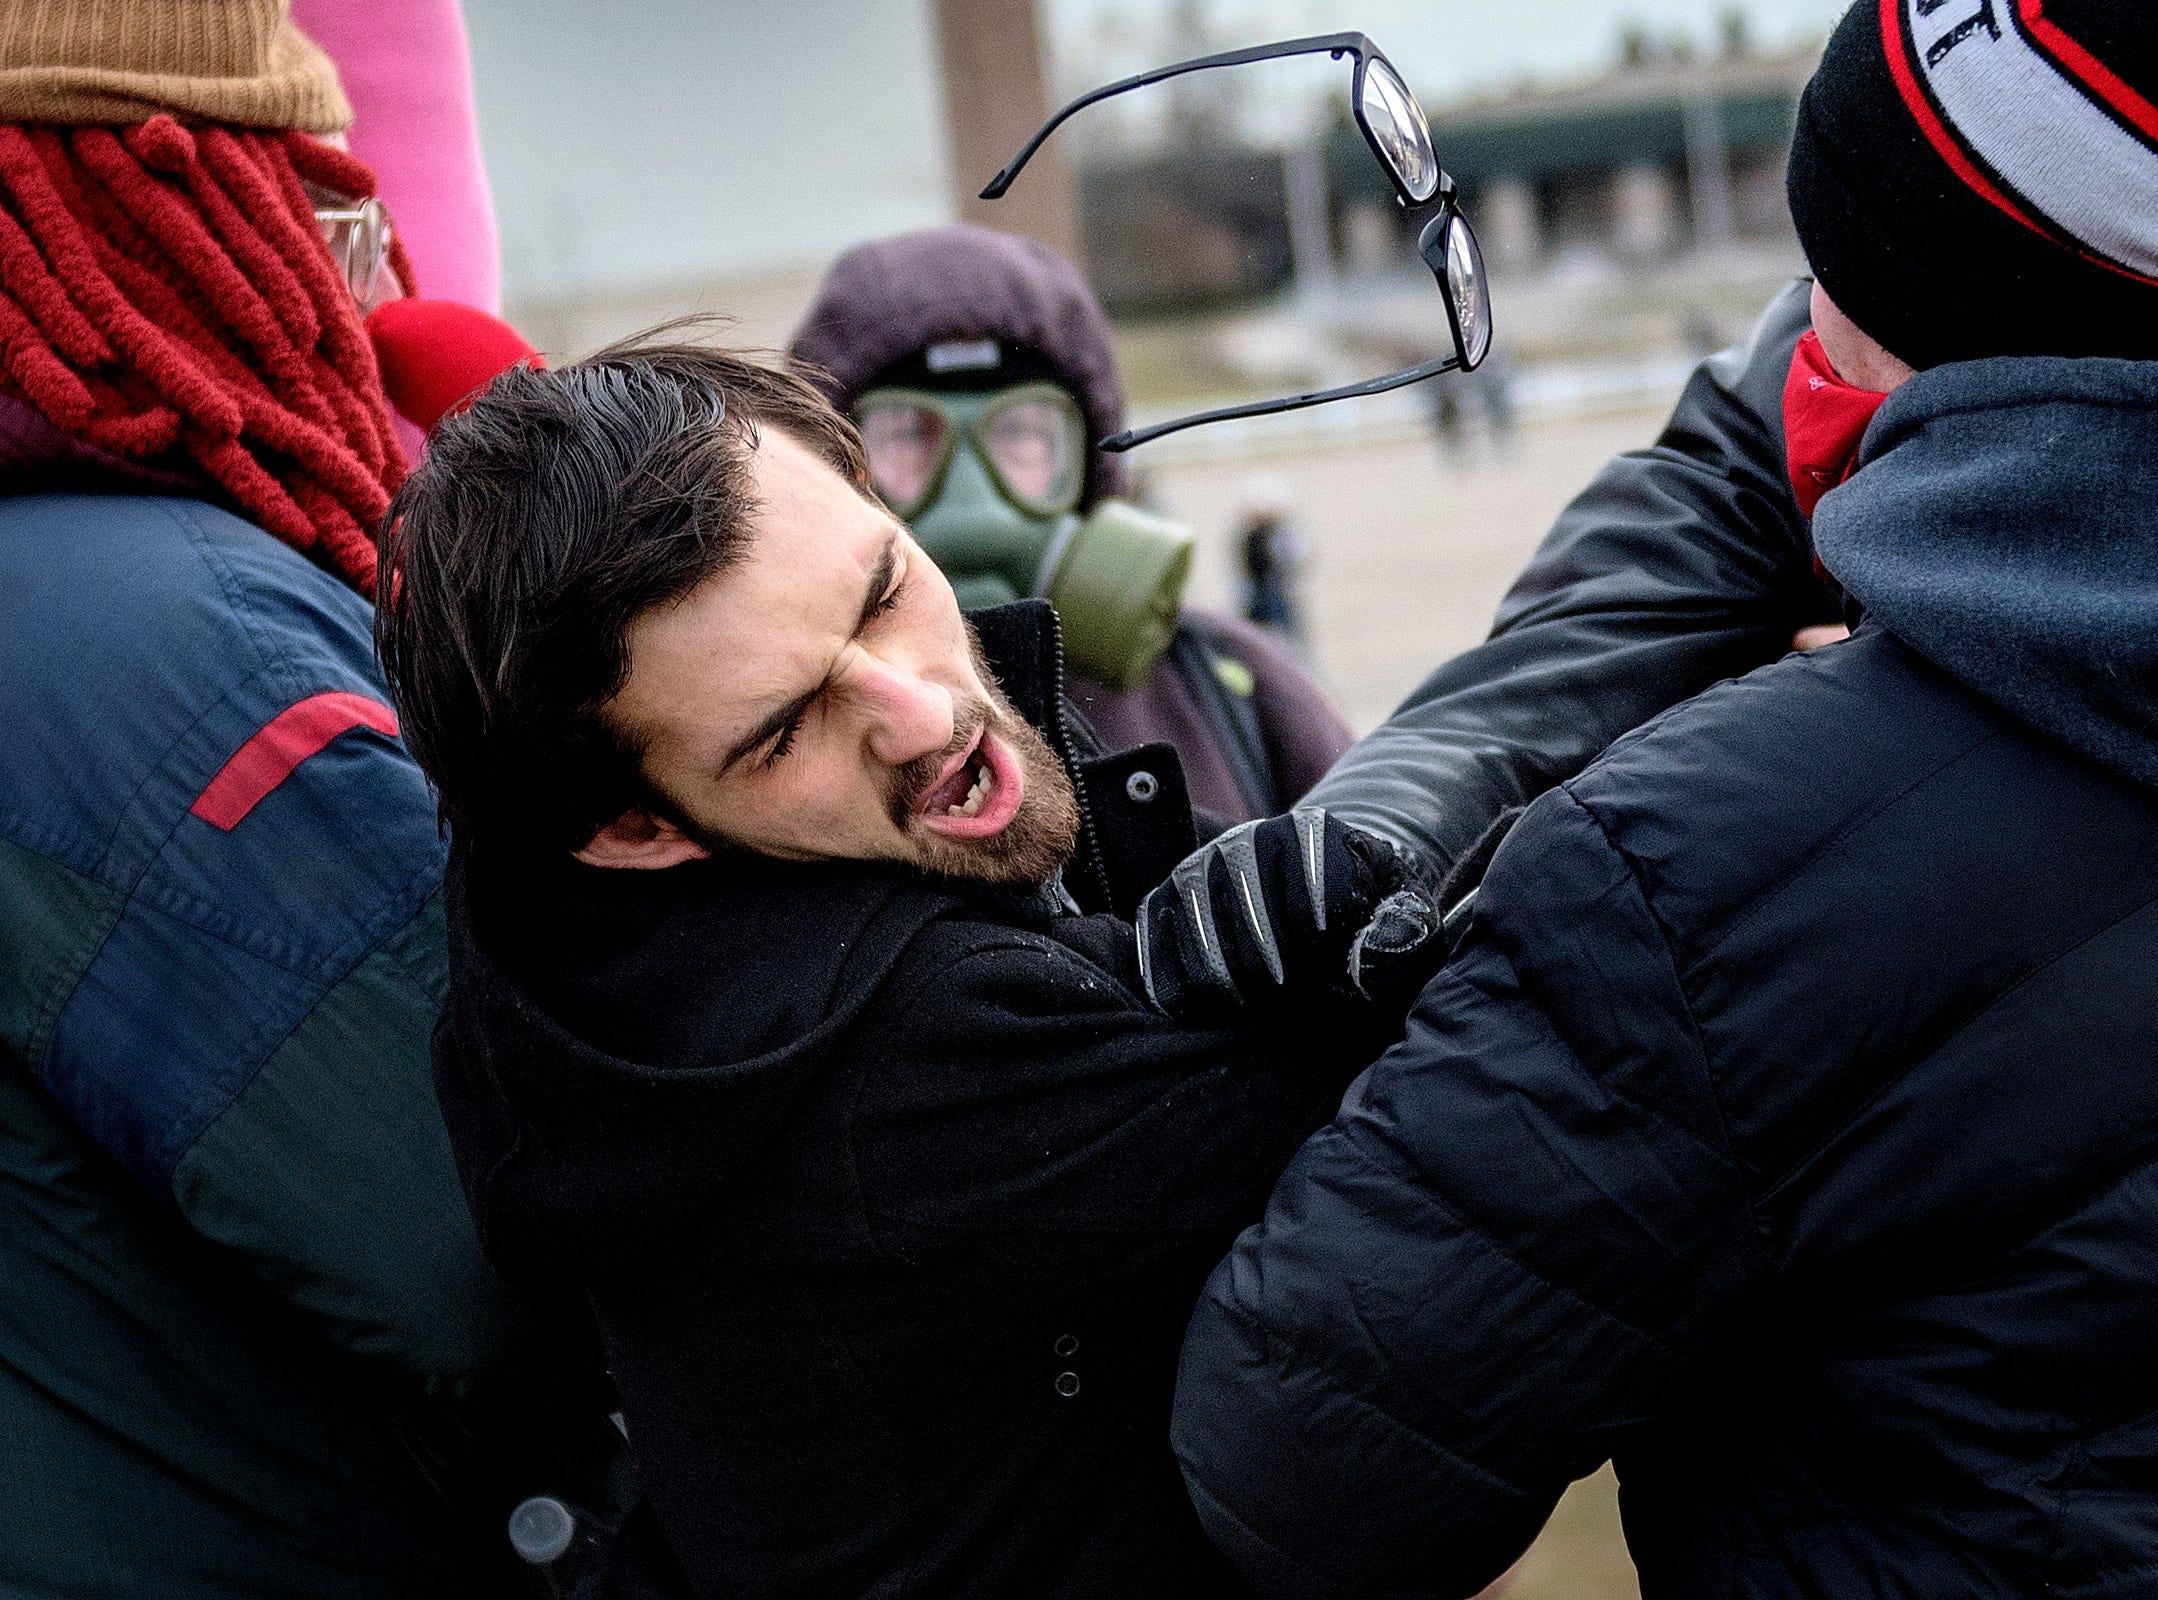 A man who was trying to enter the Richard Spencer speaking event is punched in the face by a protestor on Monday, March 5, 2018, outside the MSU Pavilion for Agriculture and Livestock Education in East Lansing.